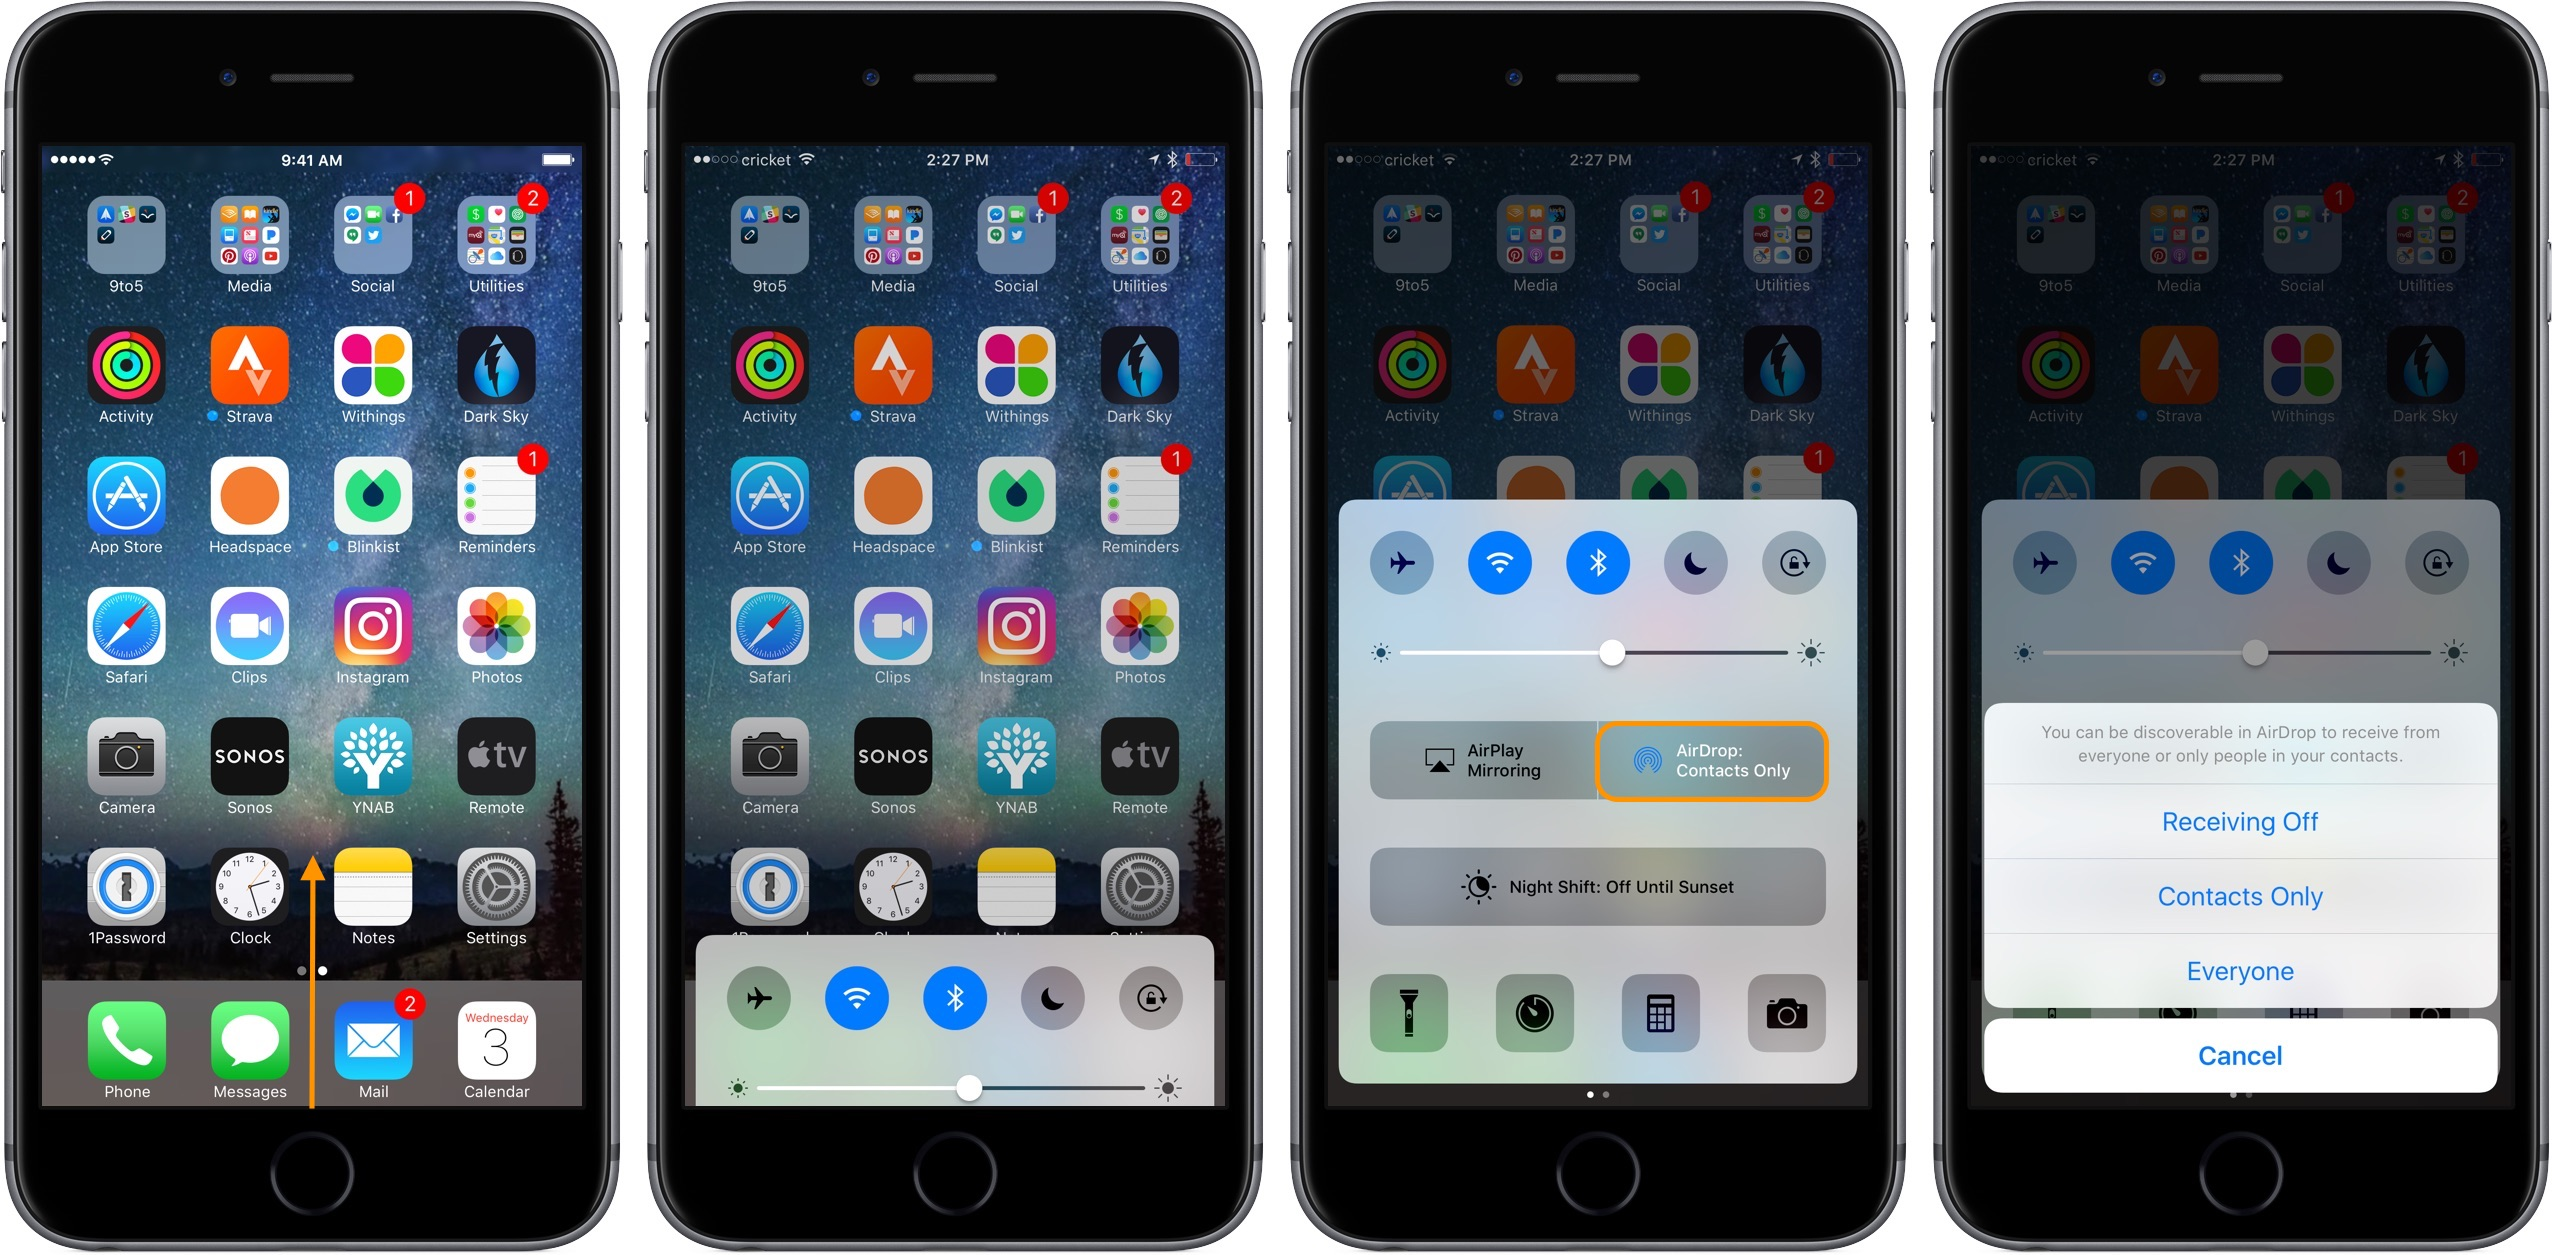 Image showing how to turn on AirDrop in iOS Control Center